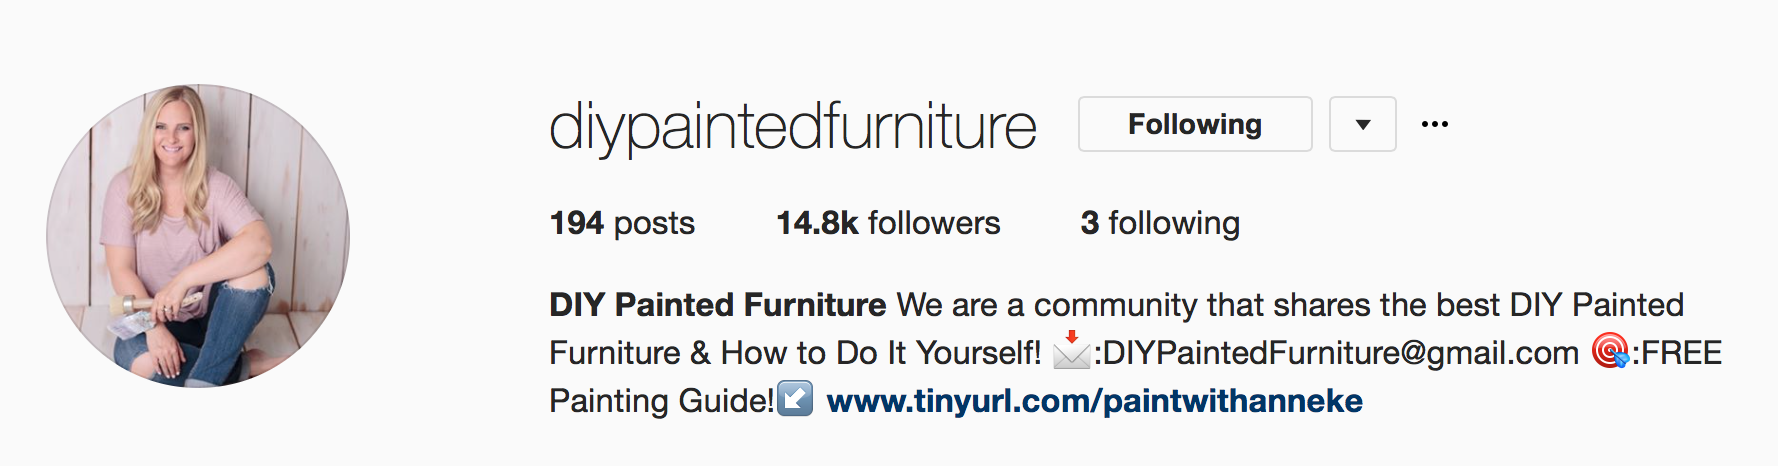 DIY Painted Furniture on Instagram